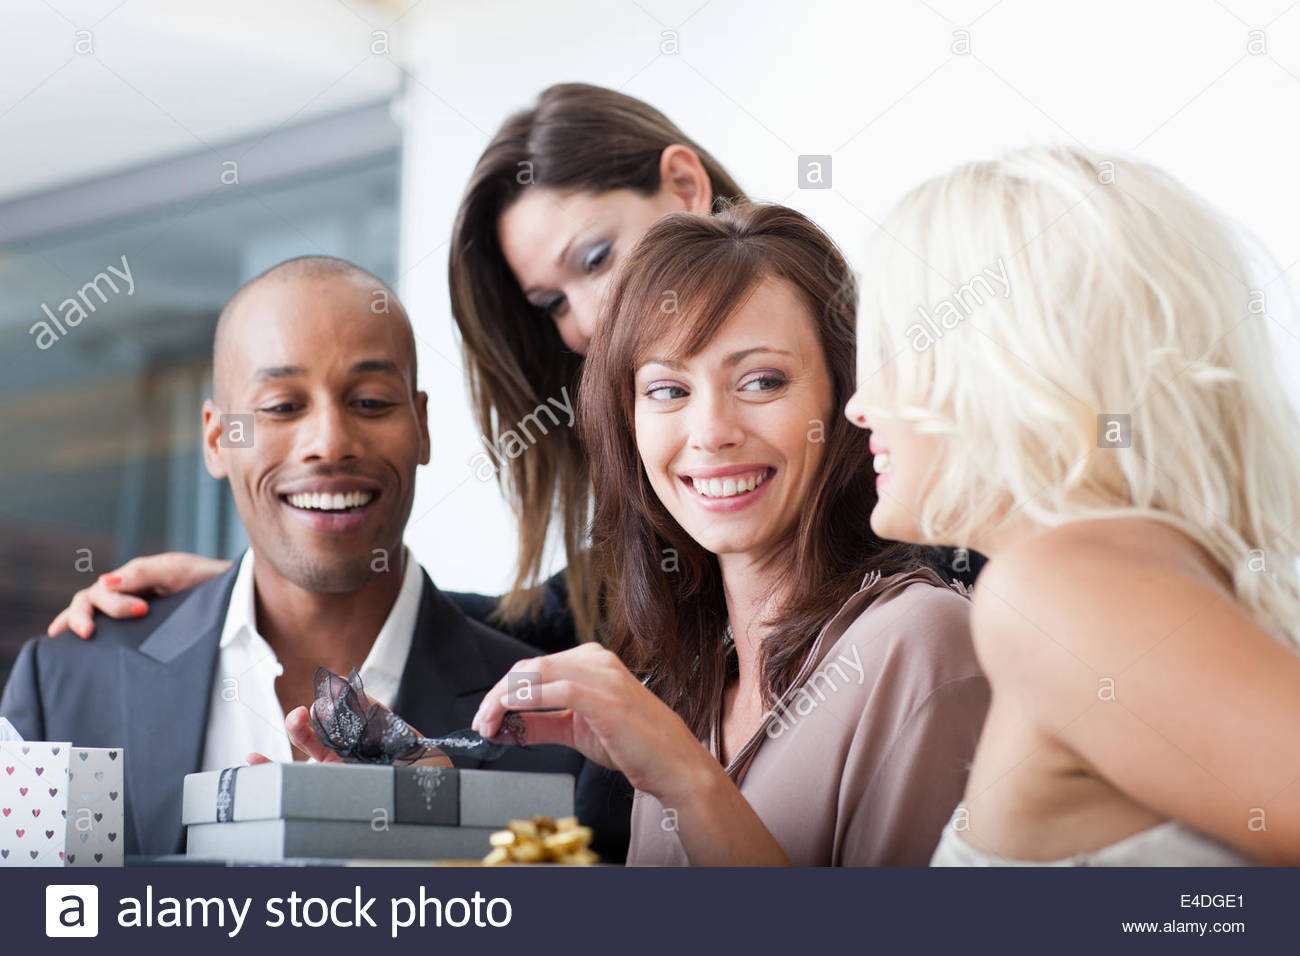 Friends opening gifts - Stock Image